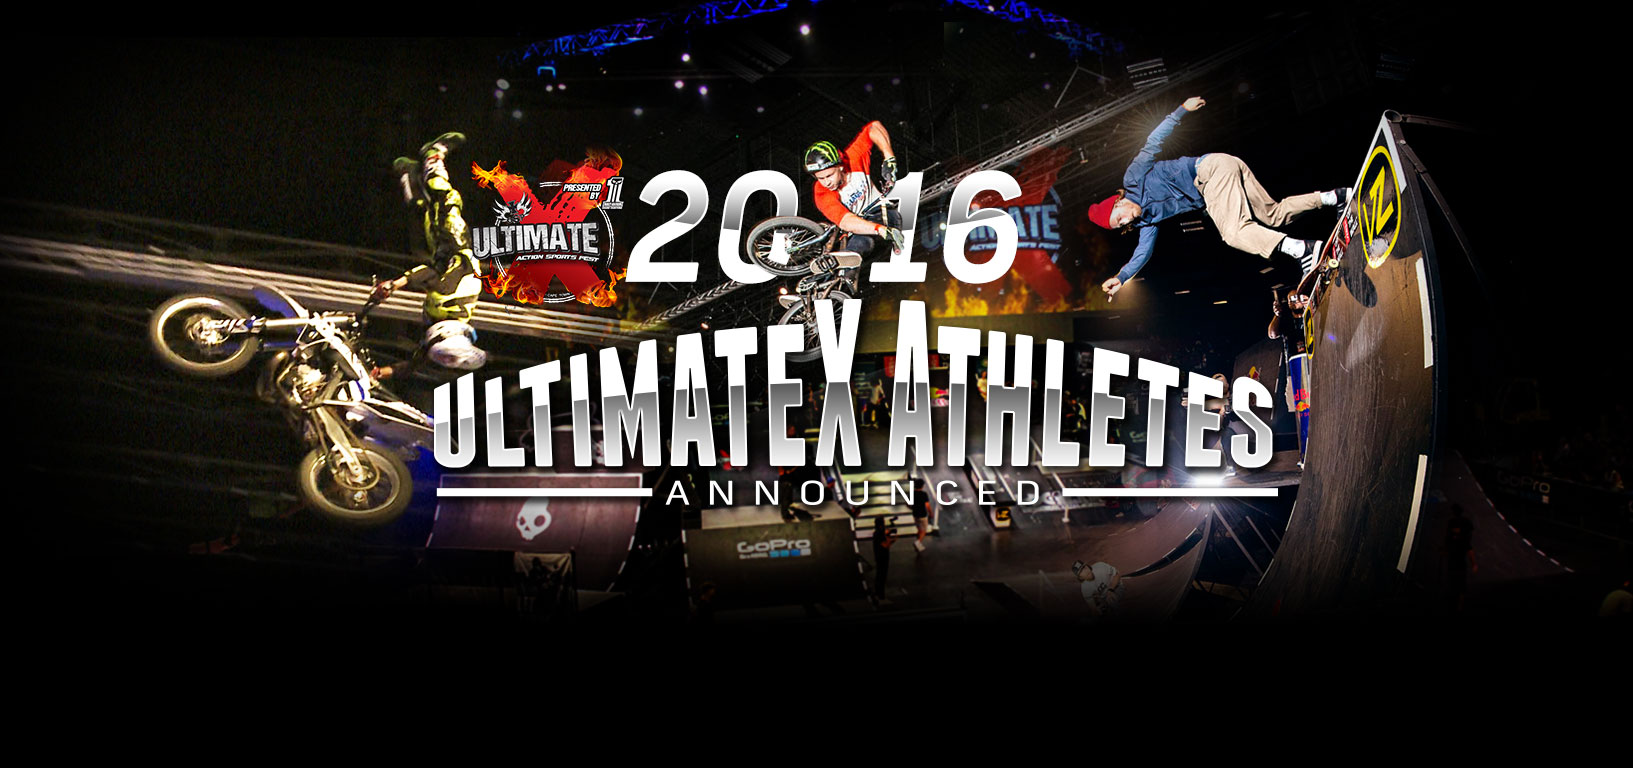 Get the Ultimate X Freestyle Motocross, BMX and Skateboarding athlete its for 2016